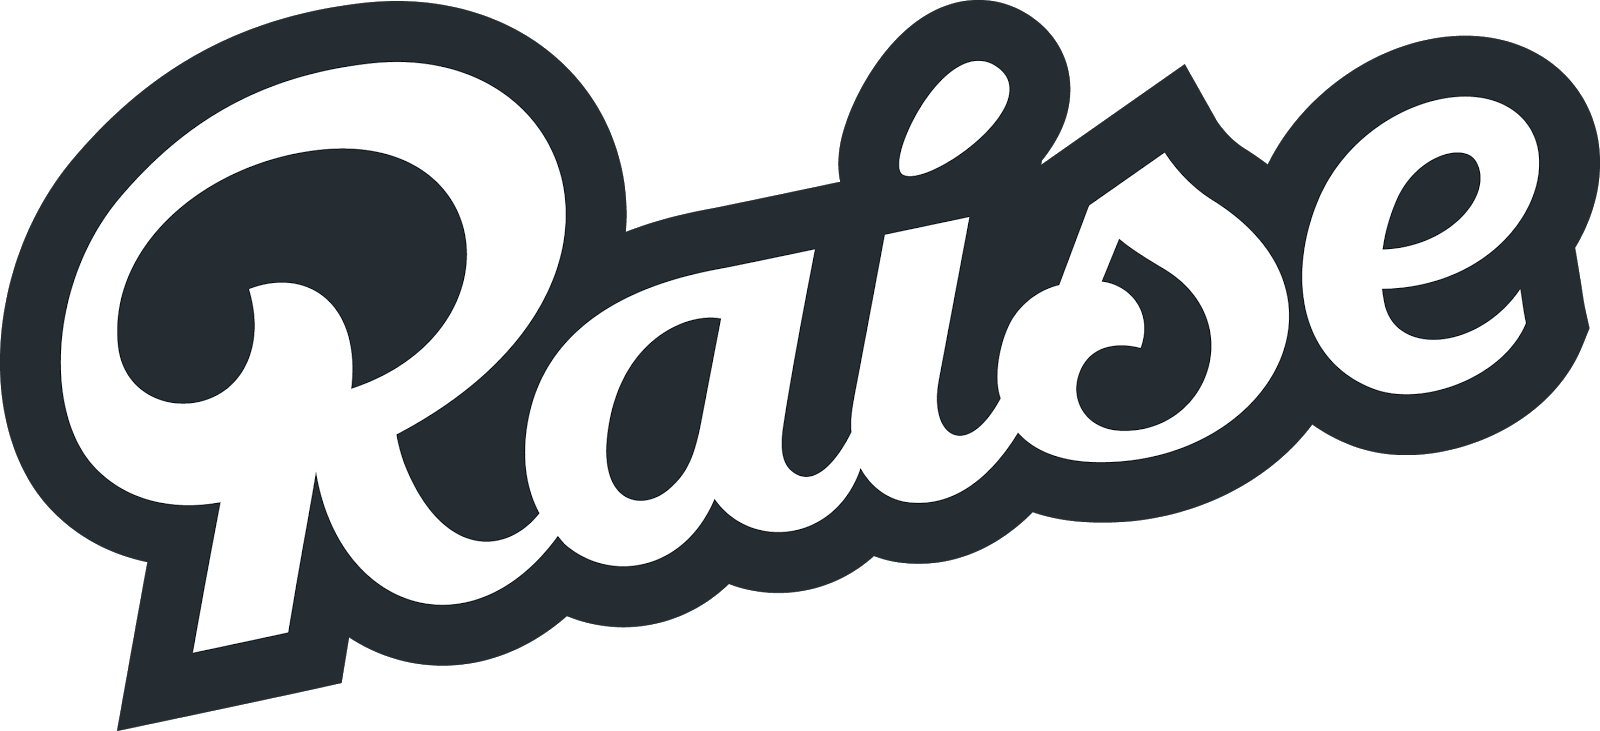 Raise company logo, digital product demo #32513